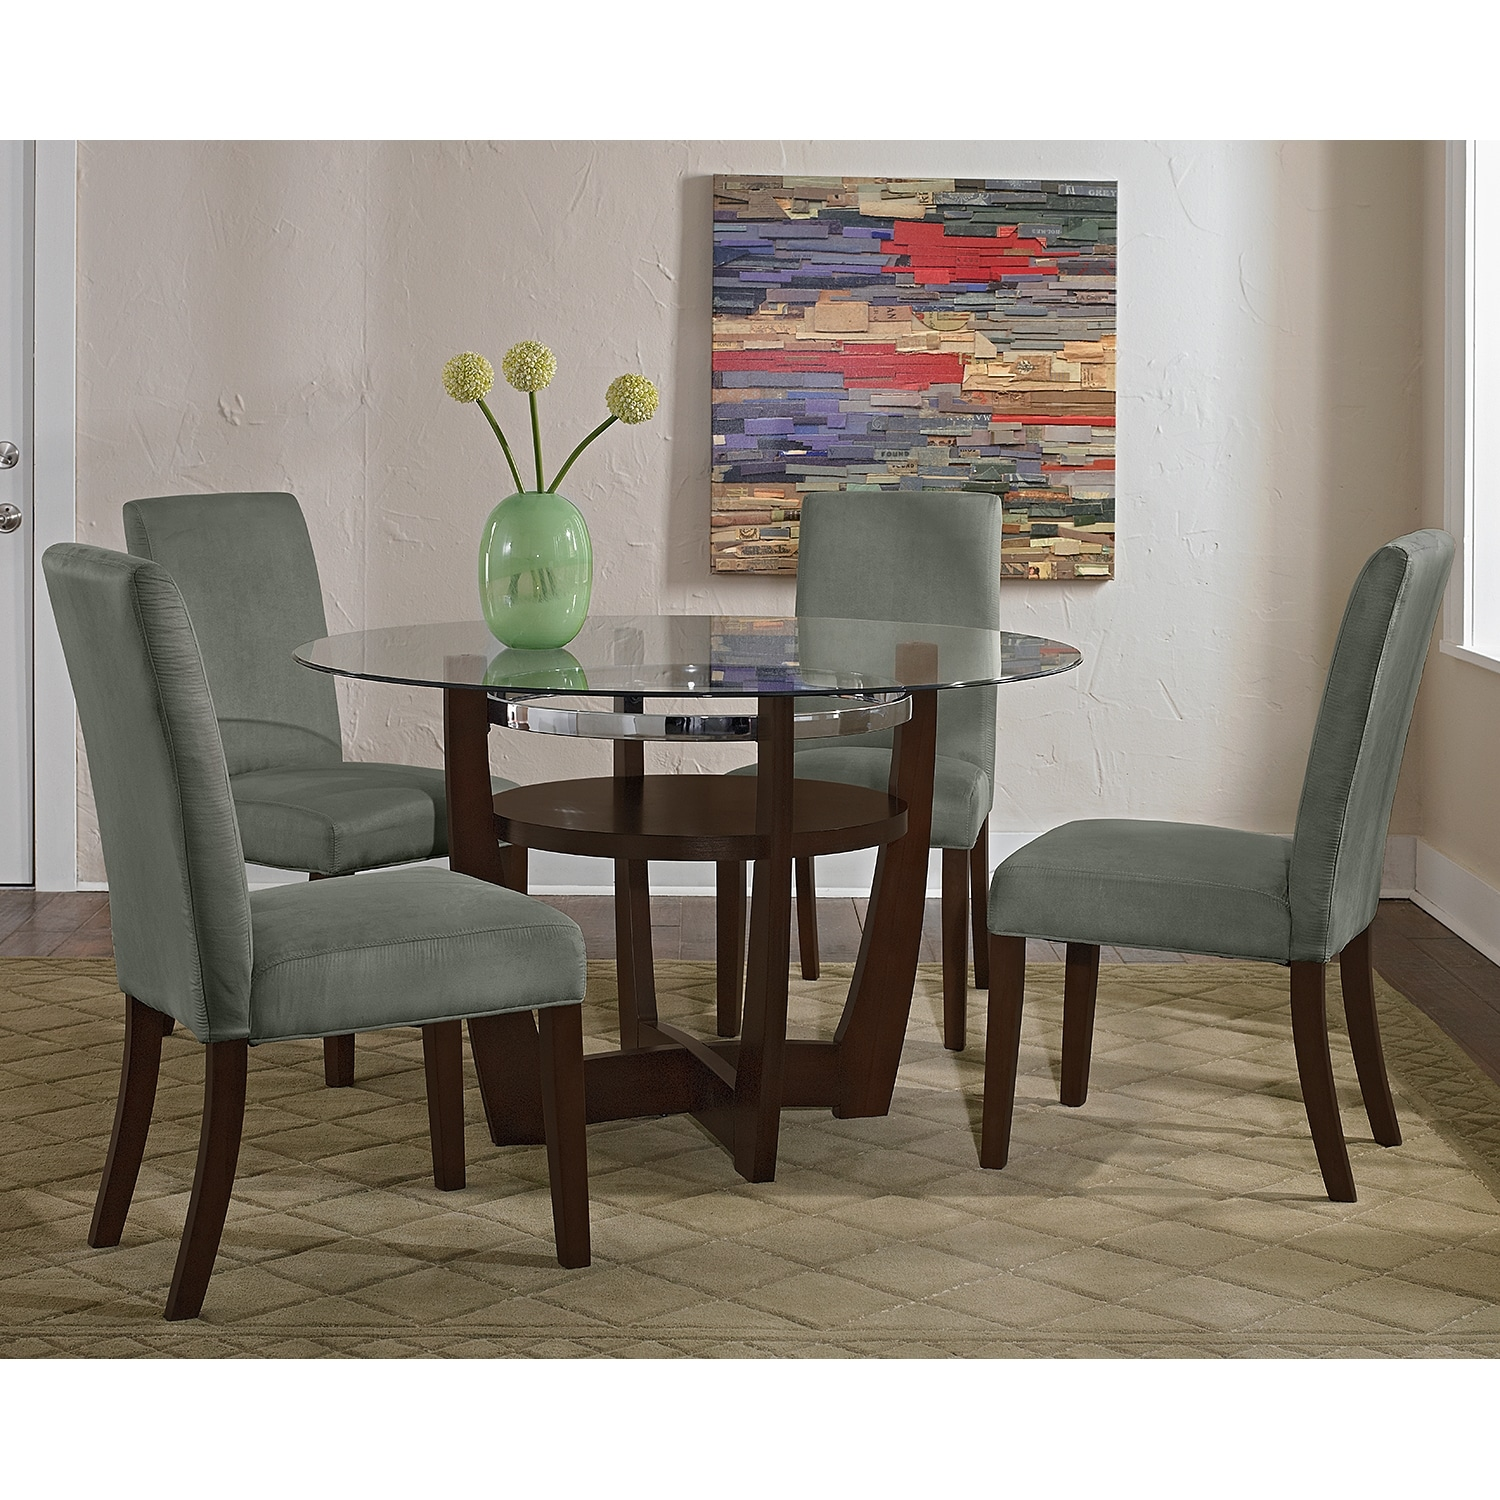 Alcove Side Chair - Sage | American Signature Furniture